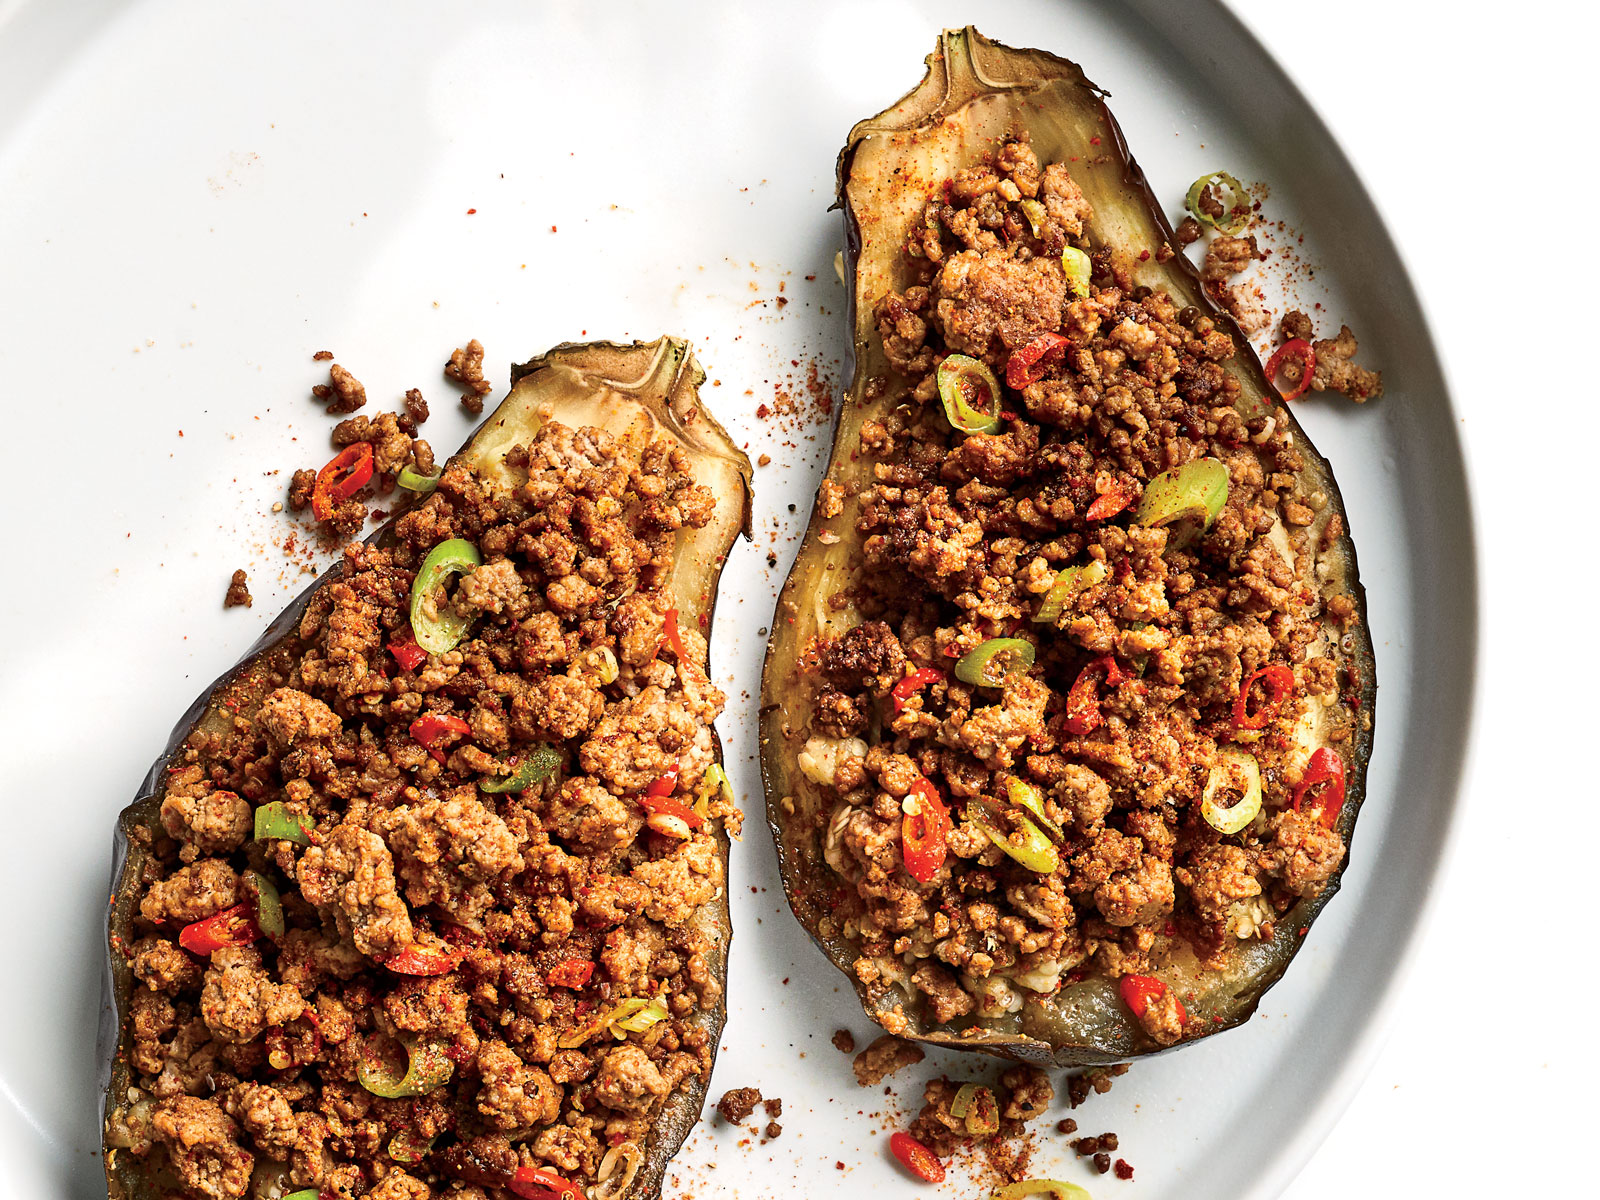 Yunnan Style Spicy Pork Stuffed Eggplant